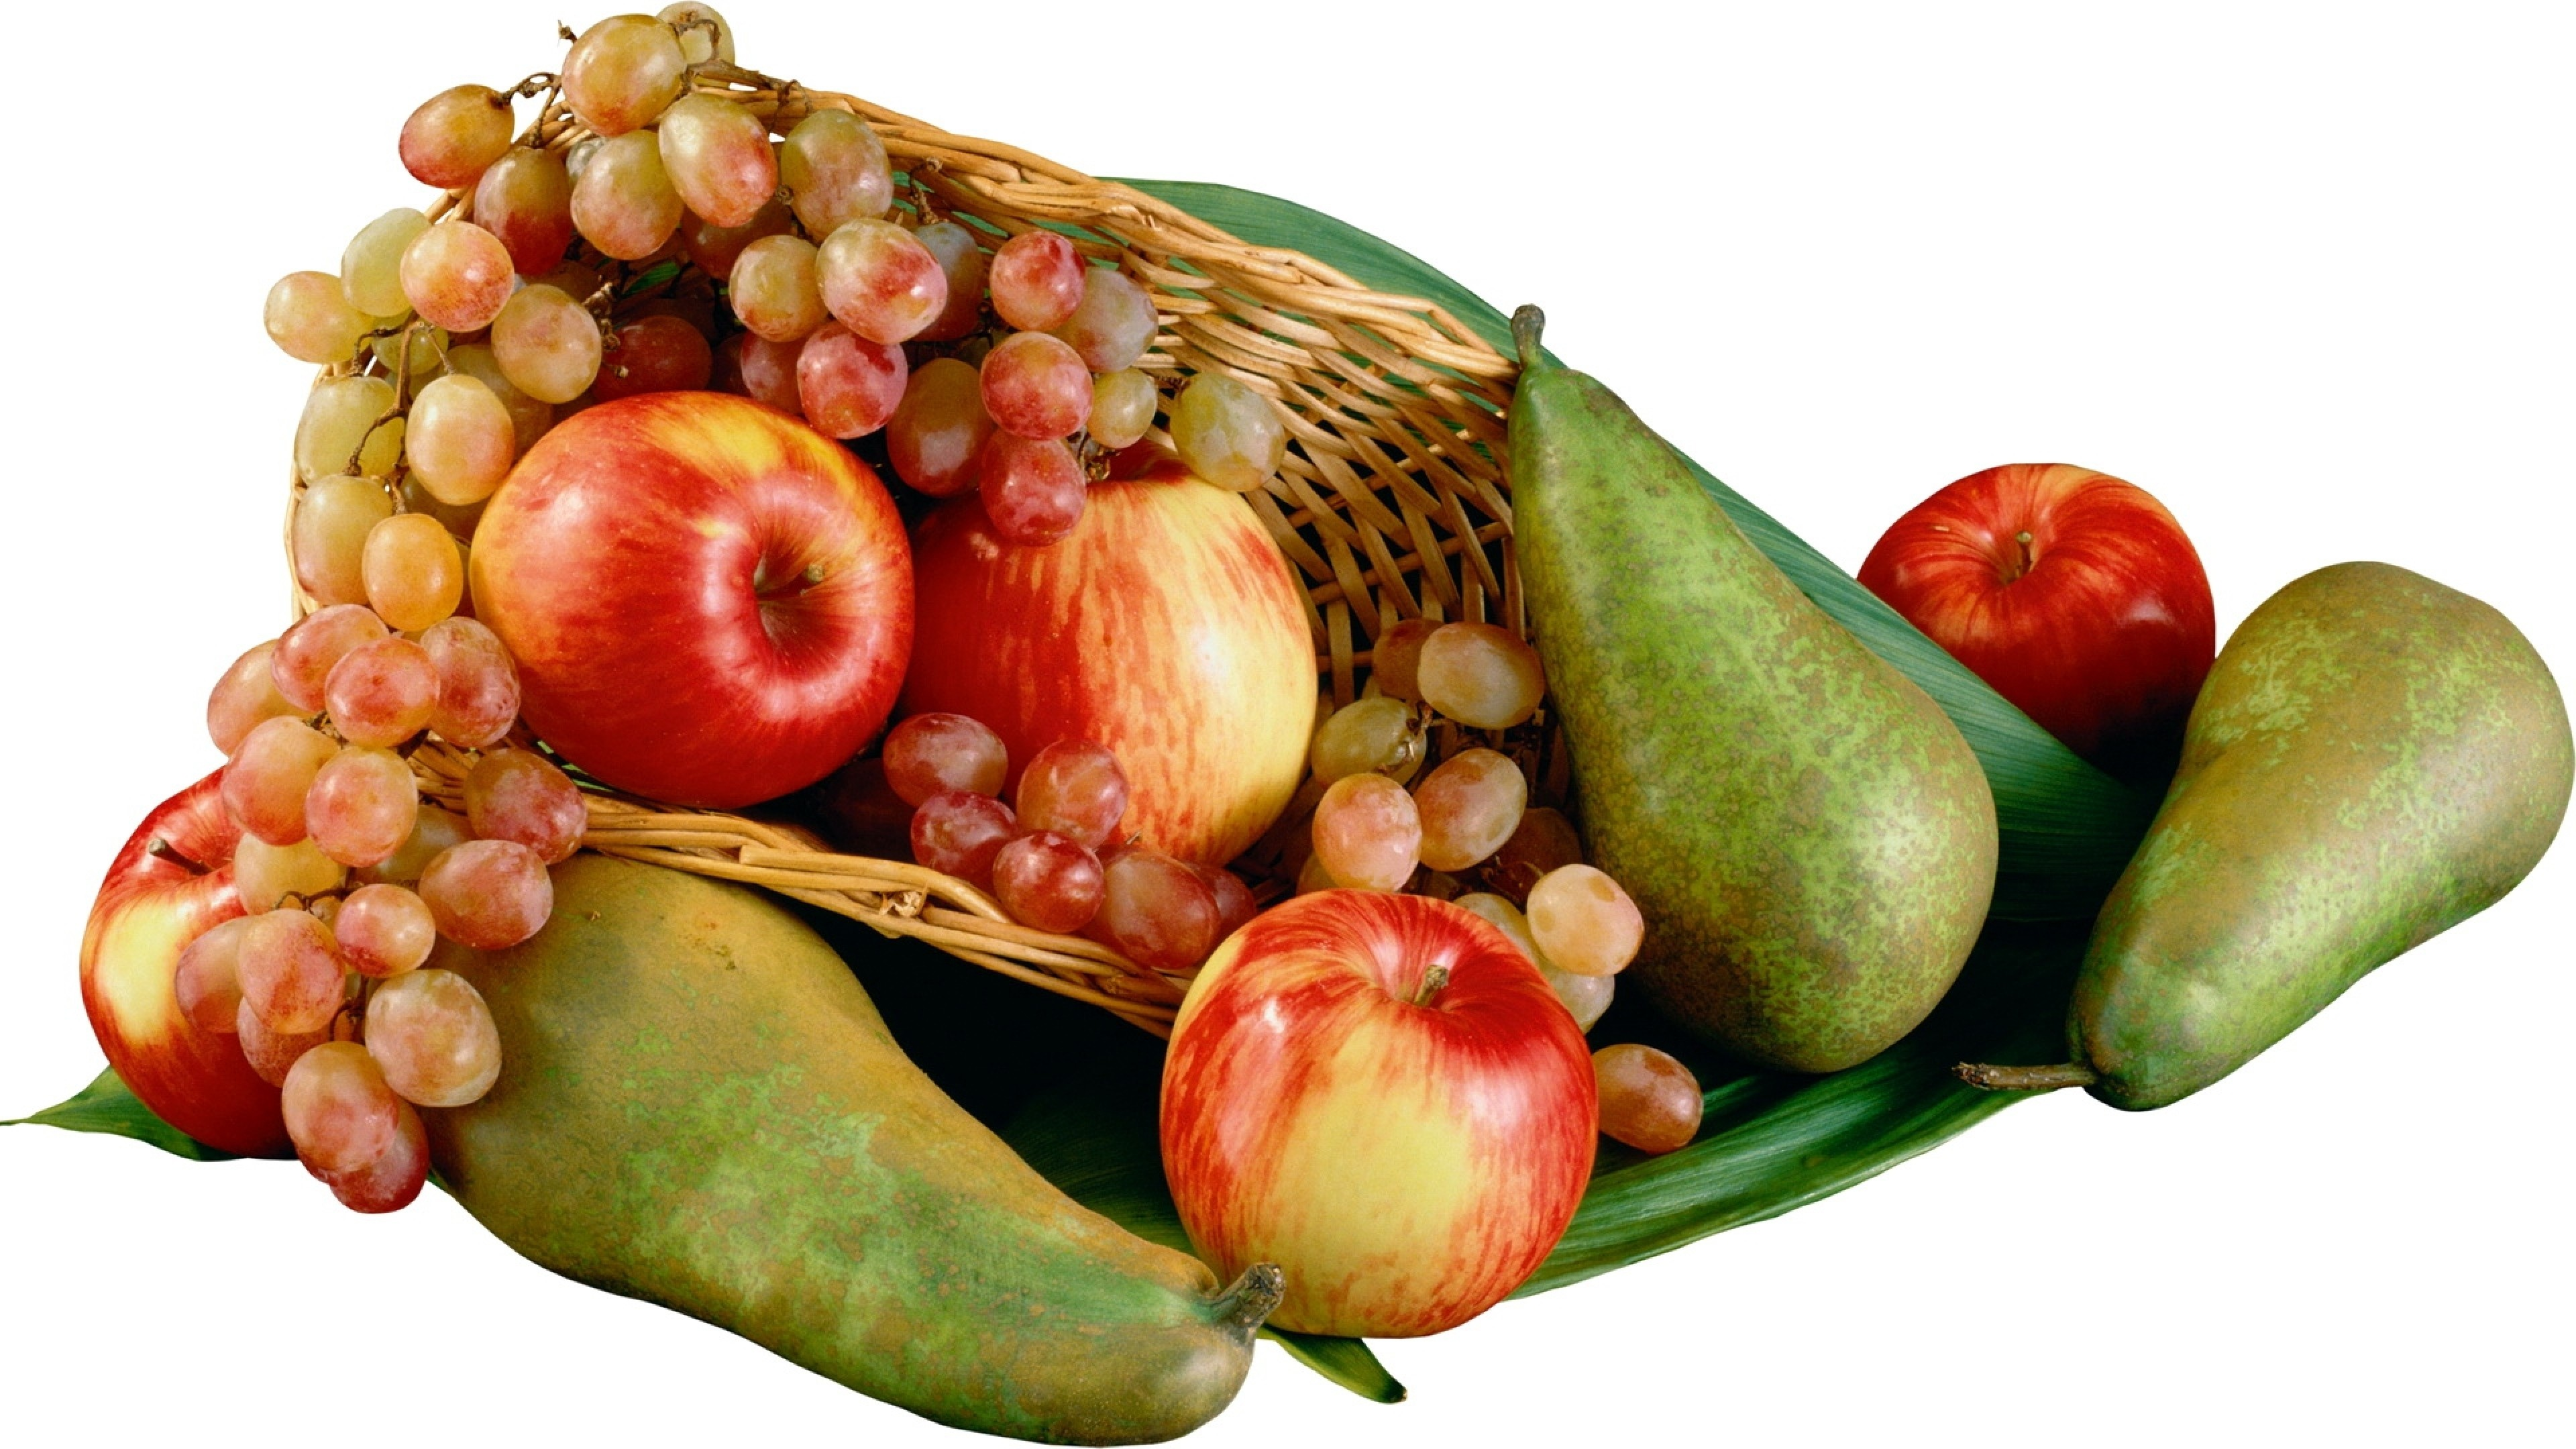 3840x2160  Wallpaper pears, apples, grapes, fruit, basket